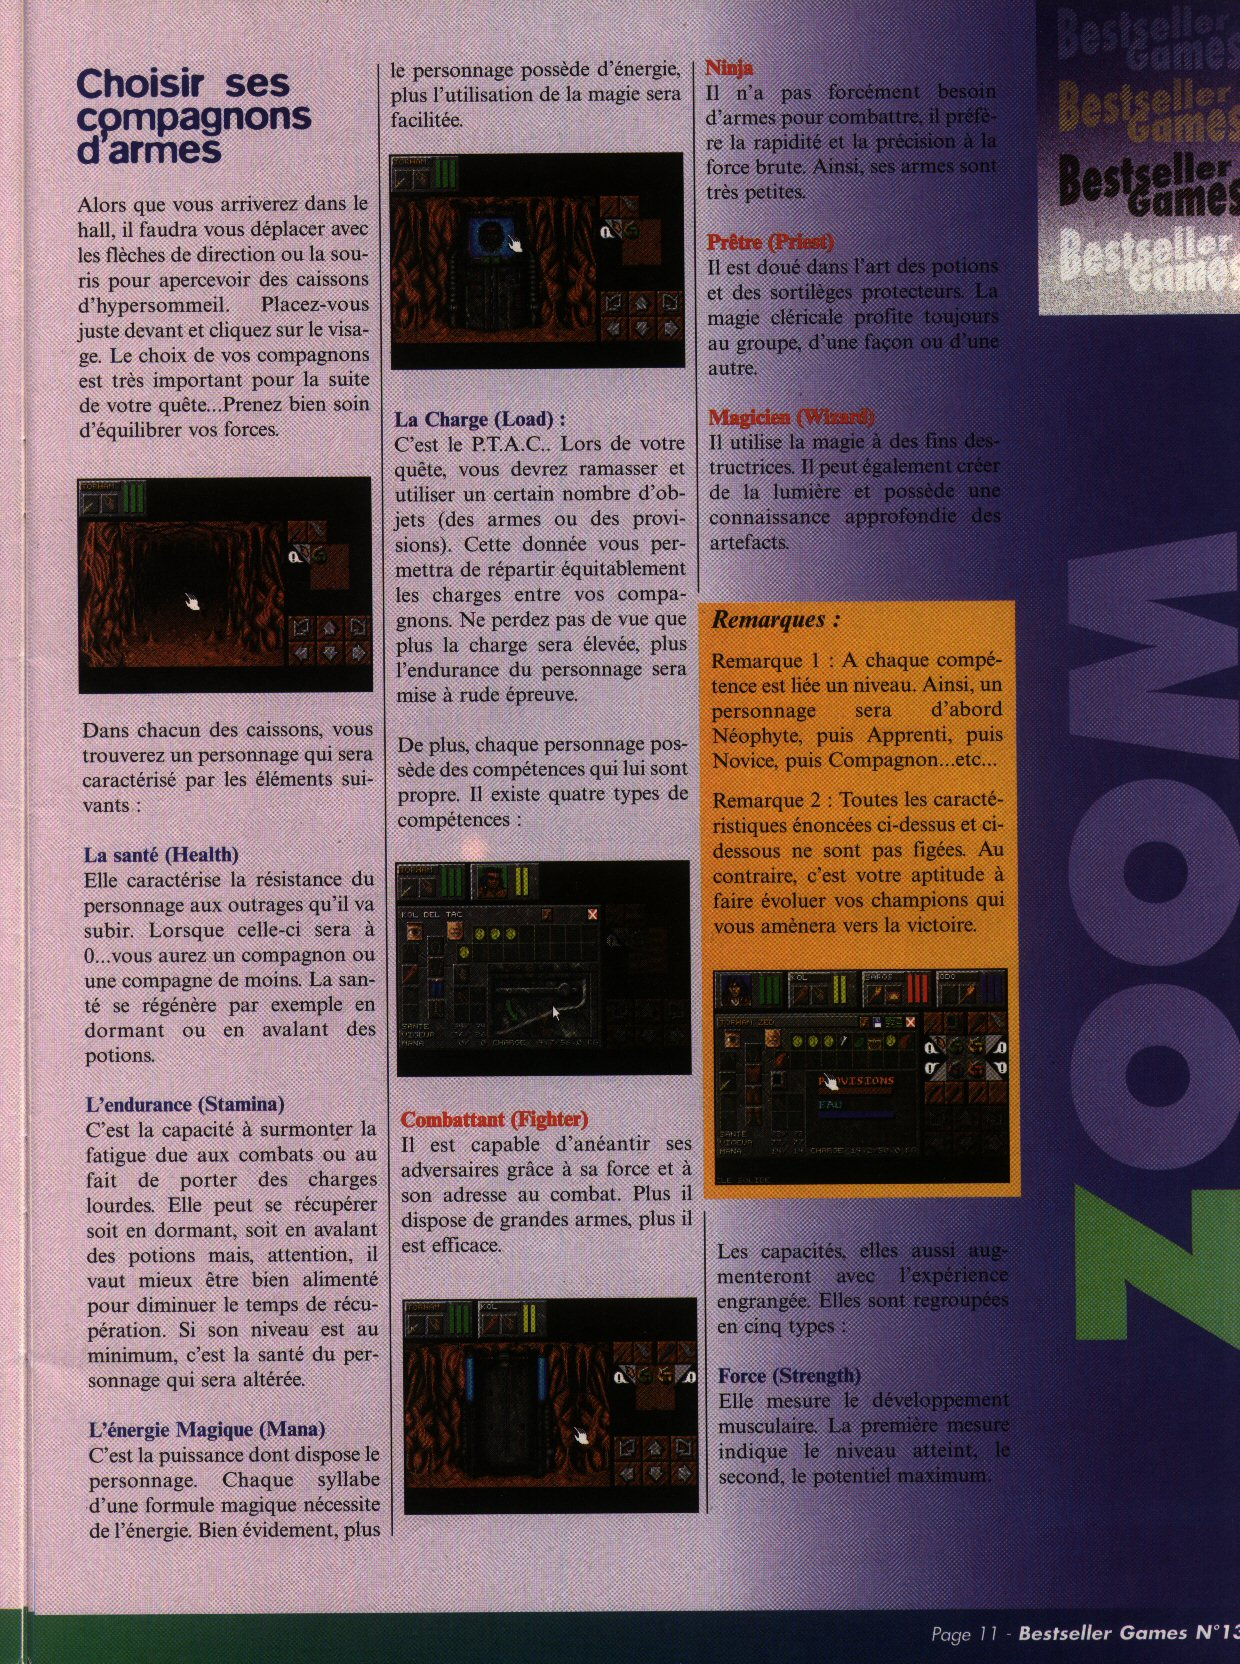 Dungeon Master II for PC (French) - CD version from French magazine 'Best Seller Games' Issue #13, September 1998 - Page 11